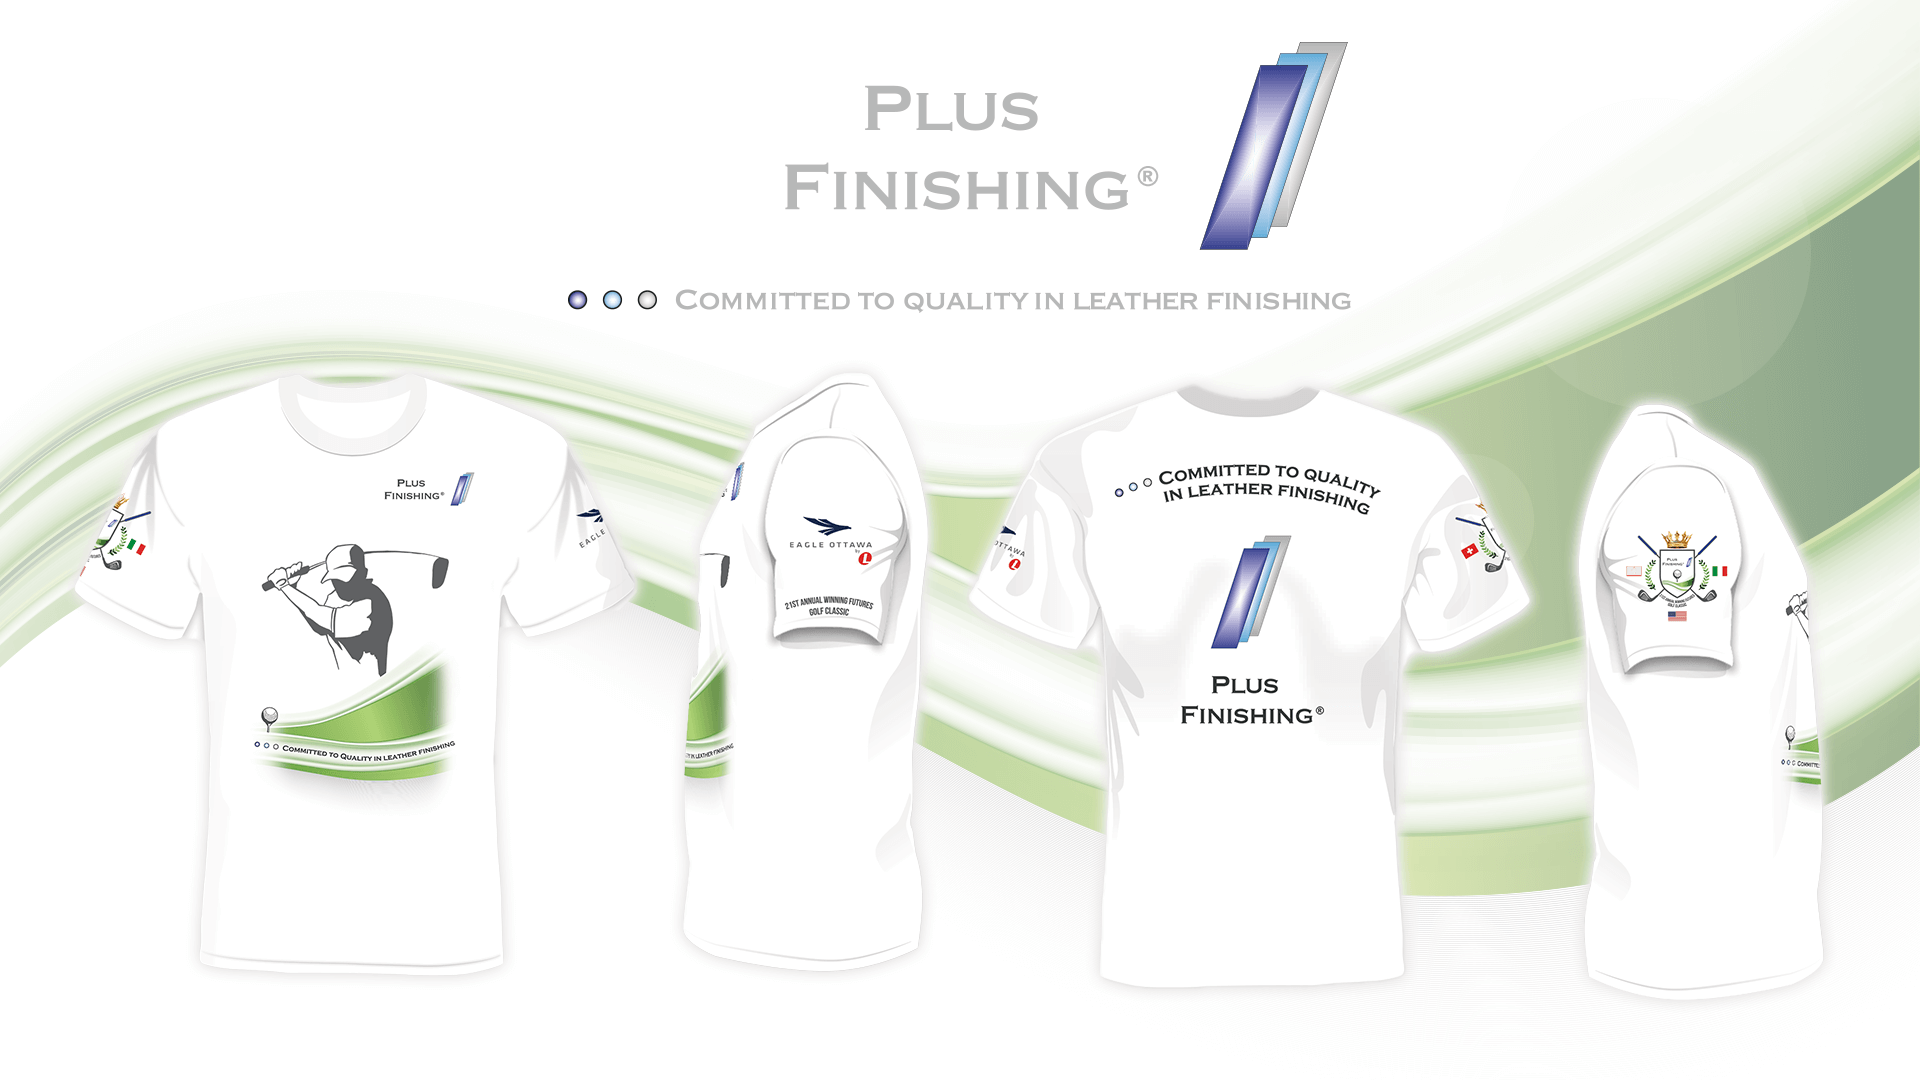 Personalisierte Golf-Event T-Shirts für Plus Finishing